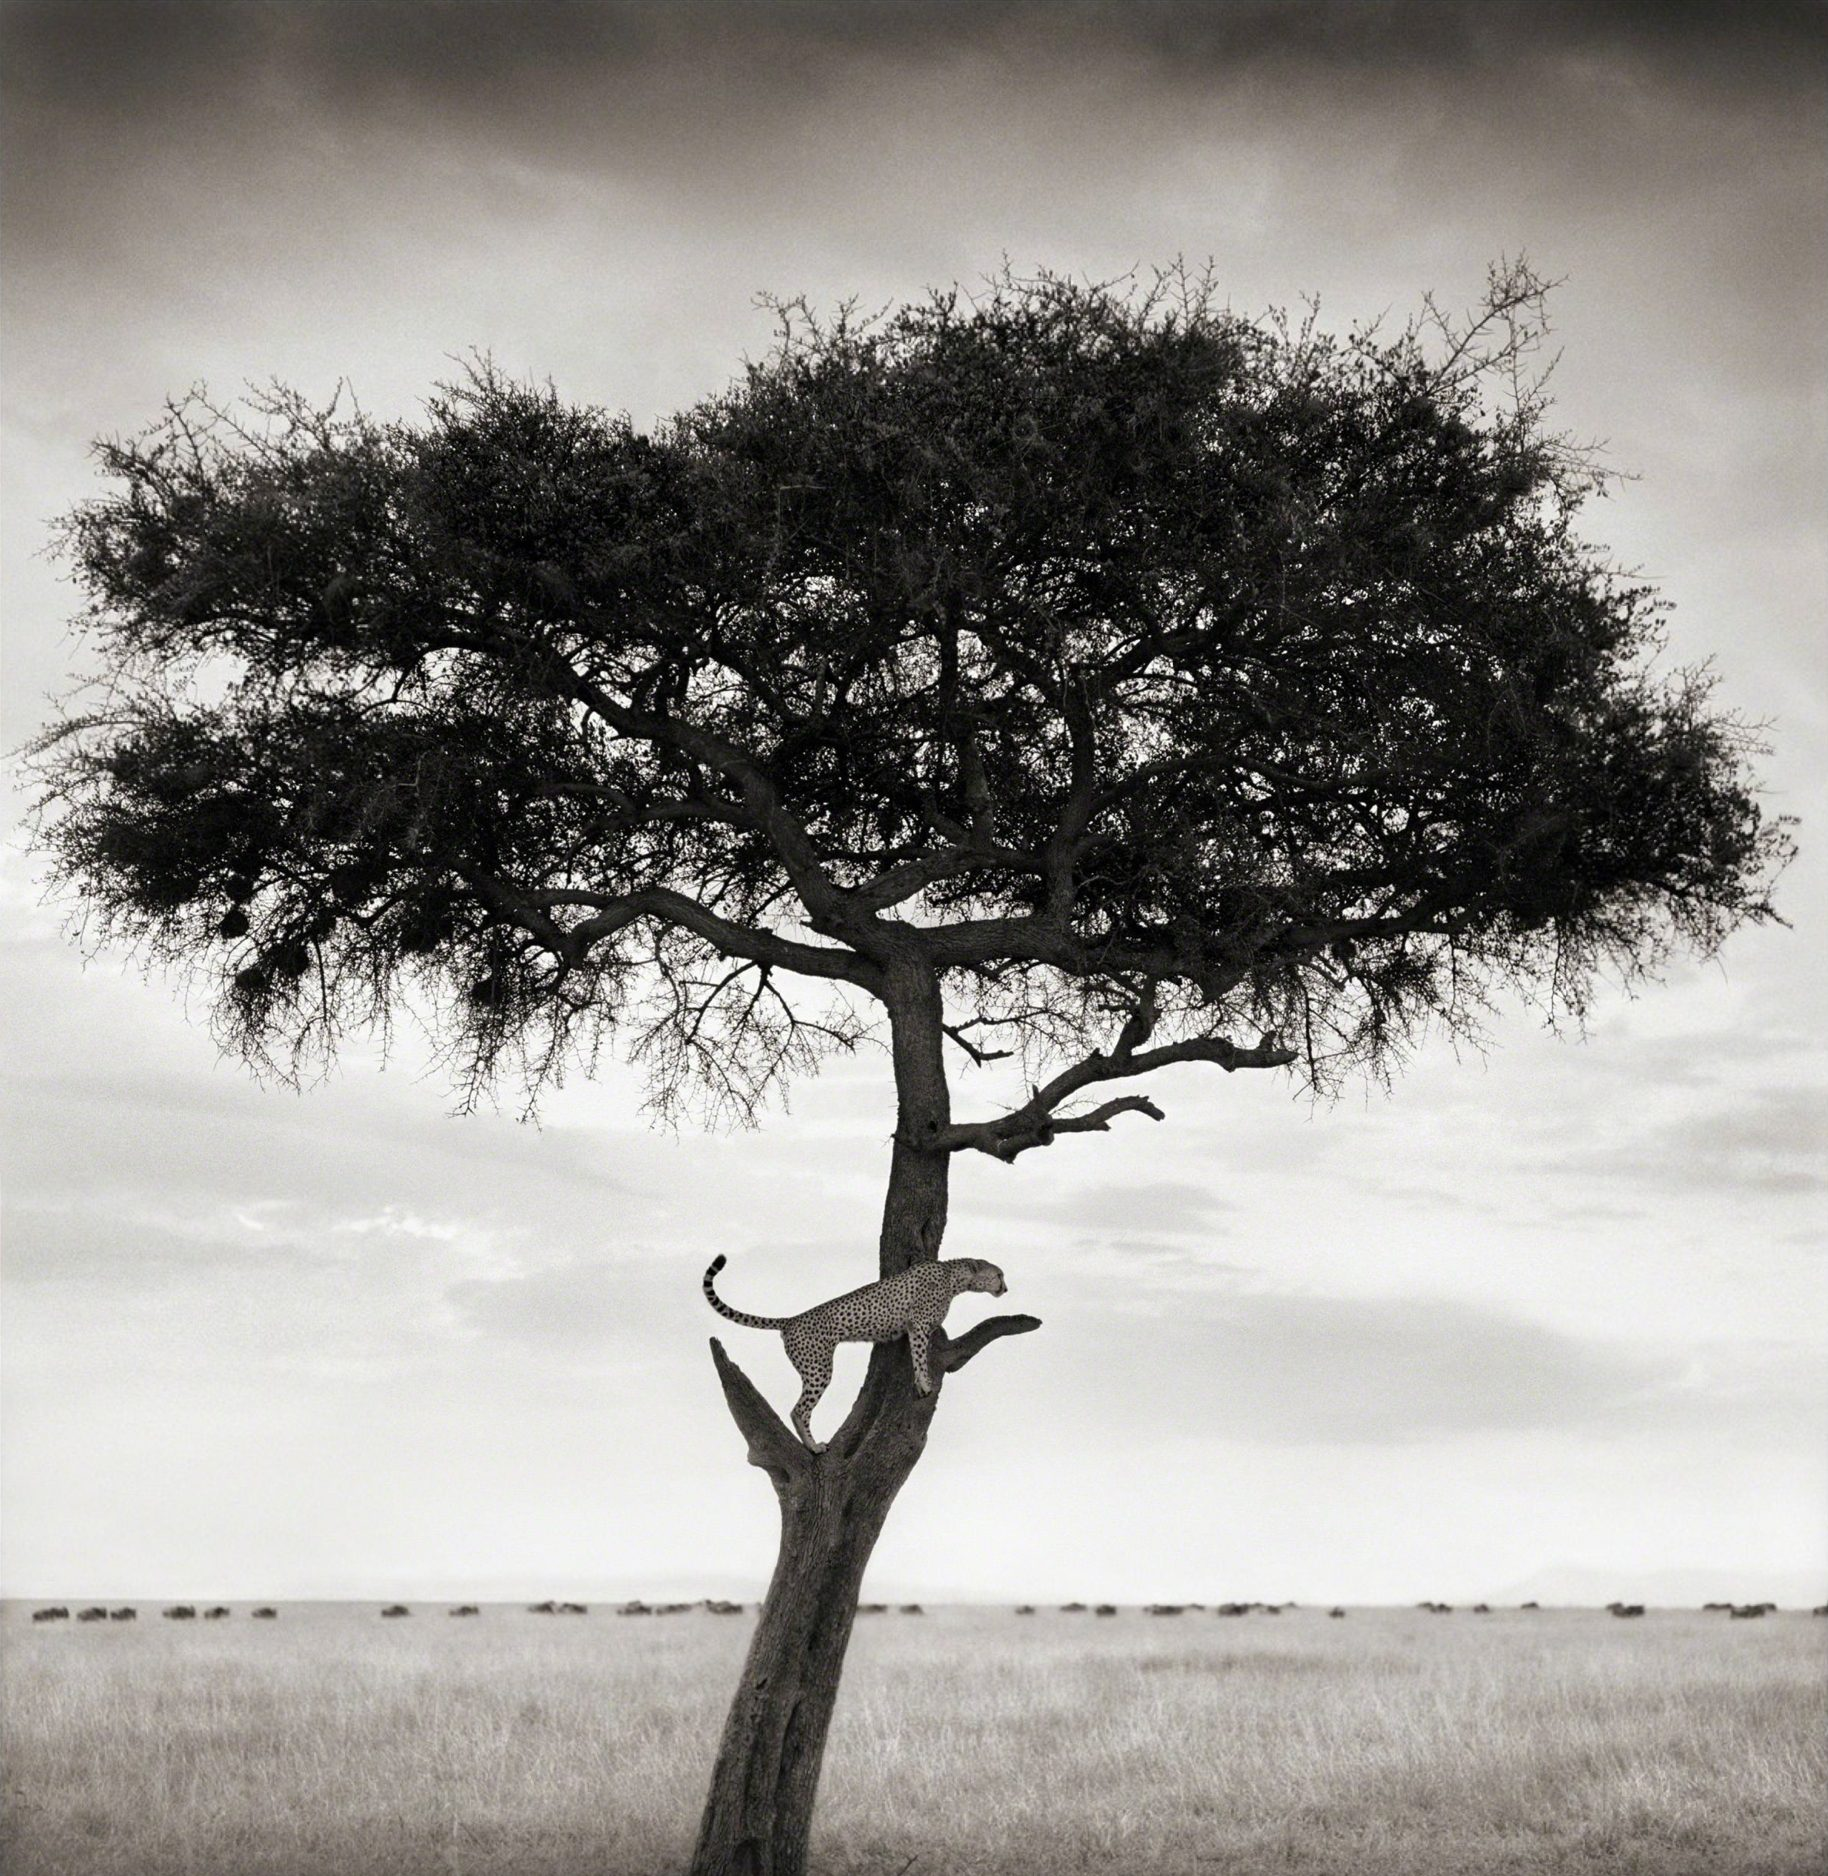 Cheetah in Tree, Maasai Mara